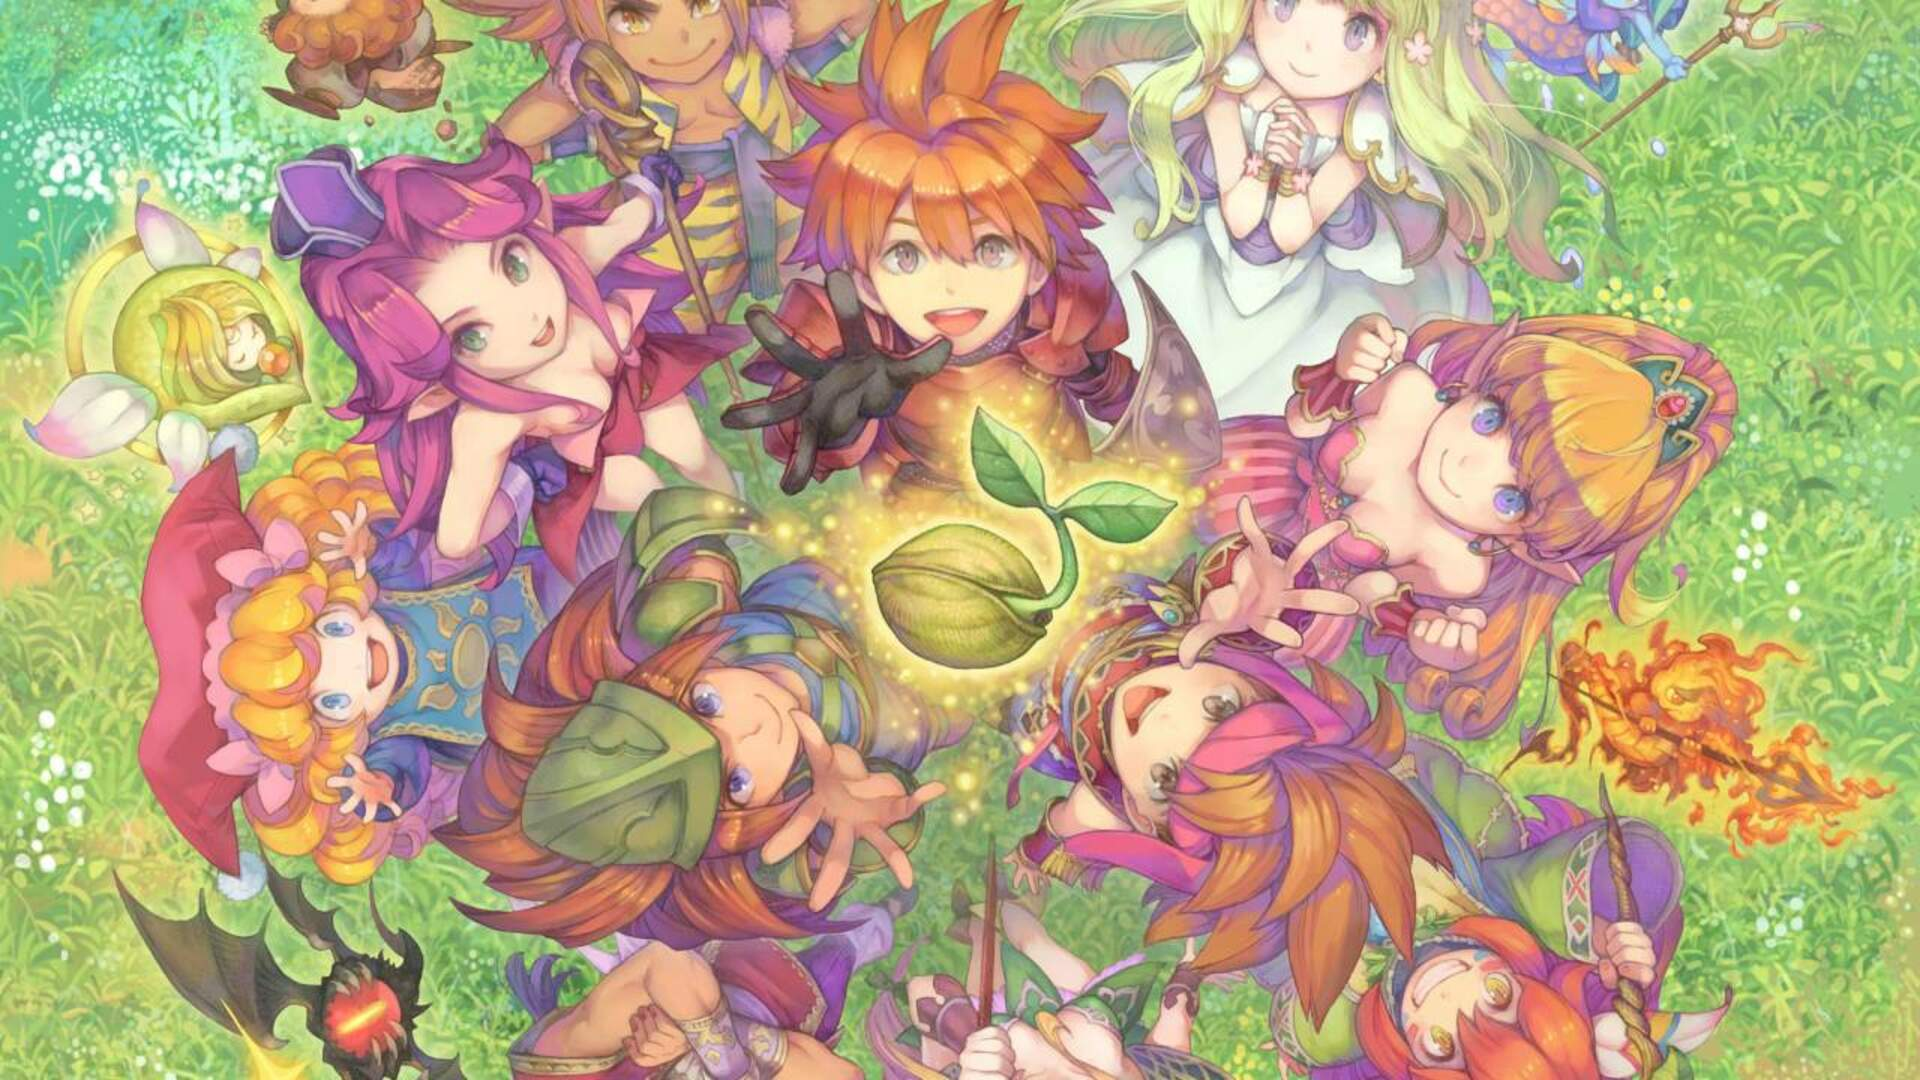 """Collection of Mana"" Resurfaces Through New Square Enix Trademark"